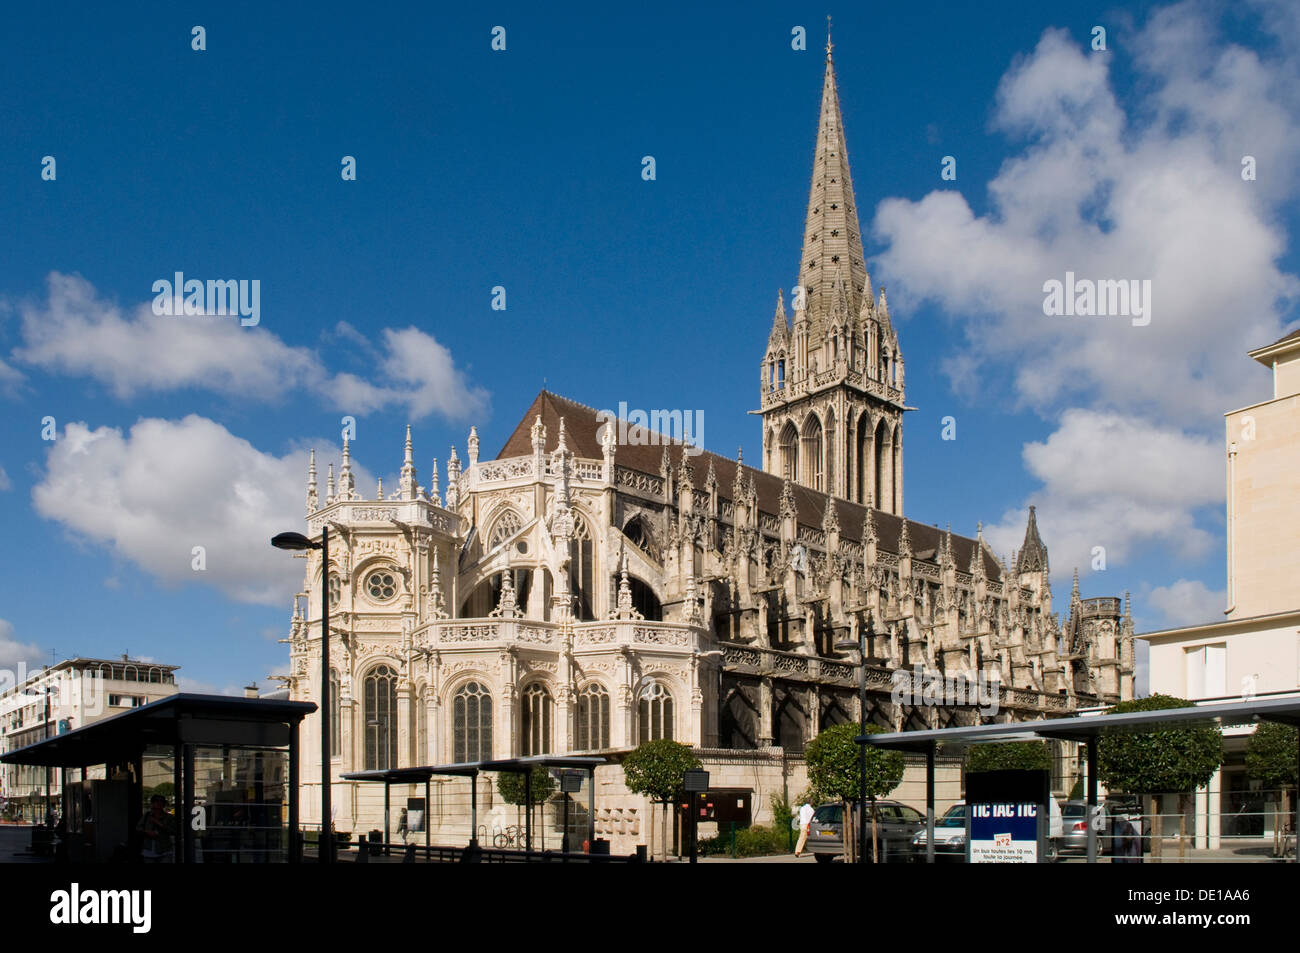 Church of St Pierre, Caen, Normandy, France - Stock Image